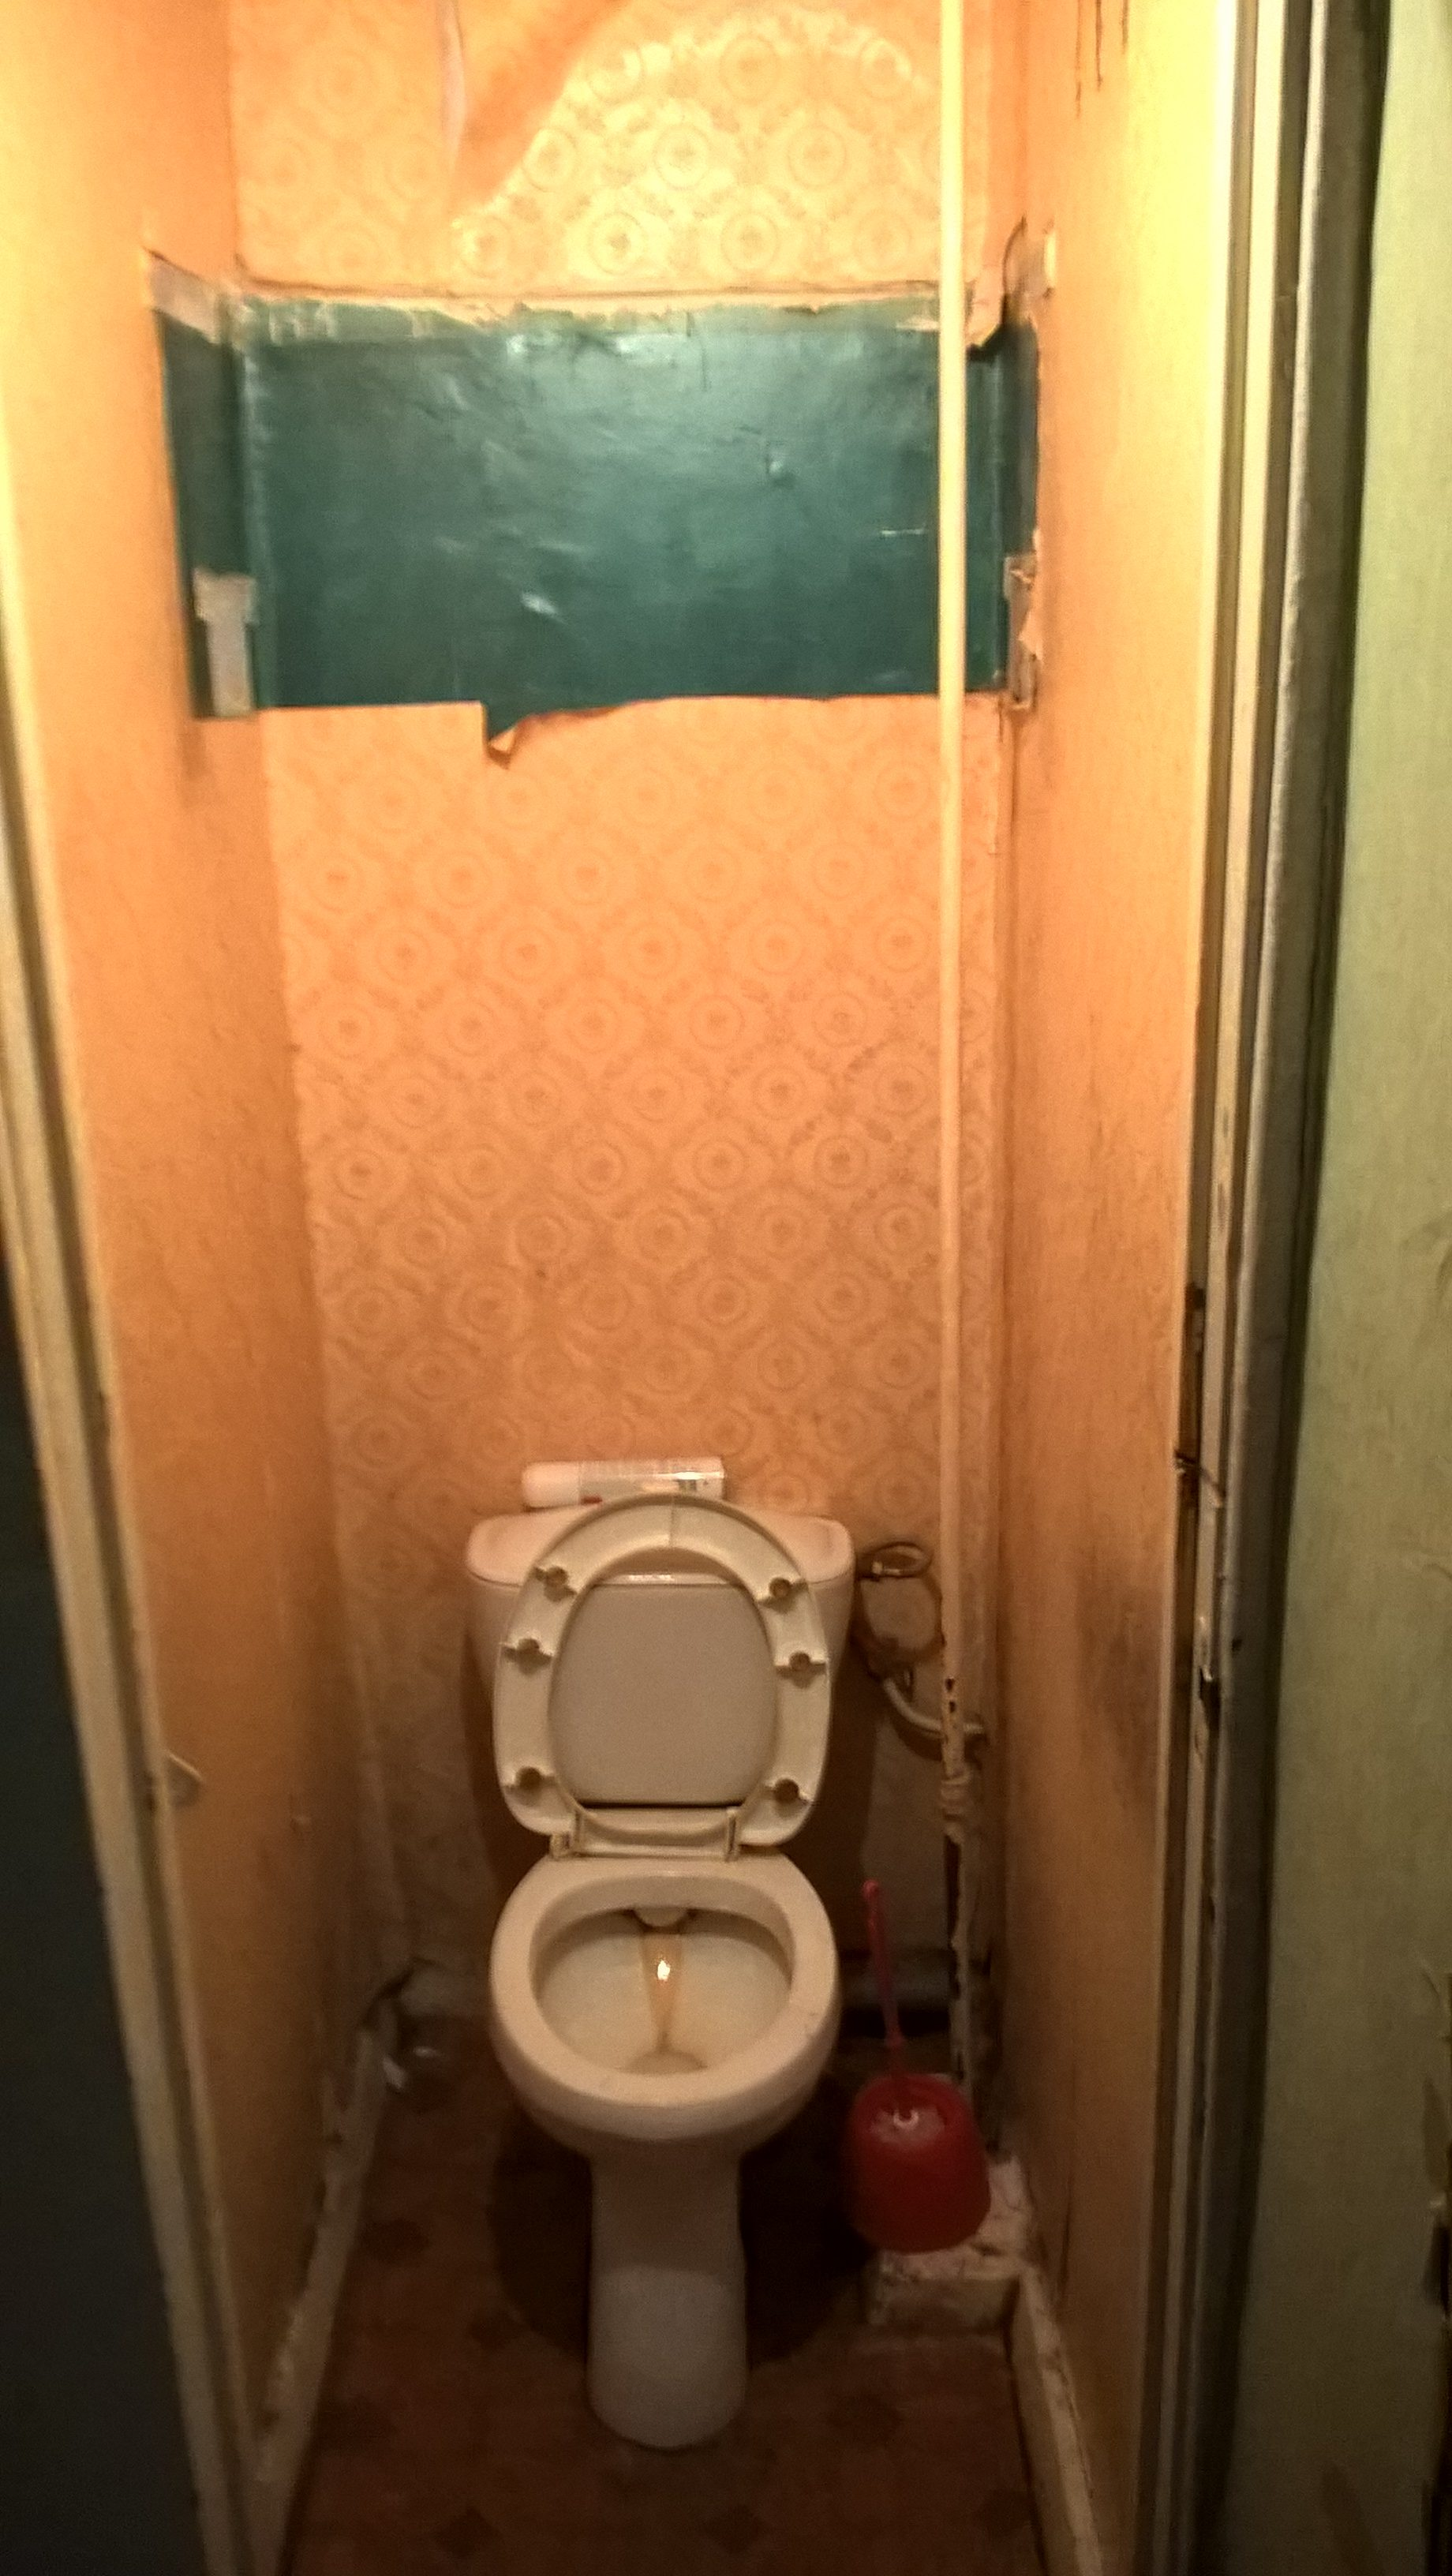 How engineers live in Russia